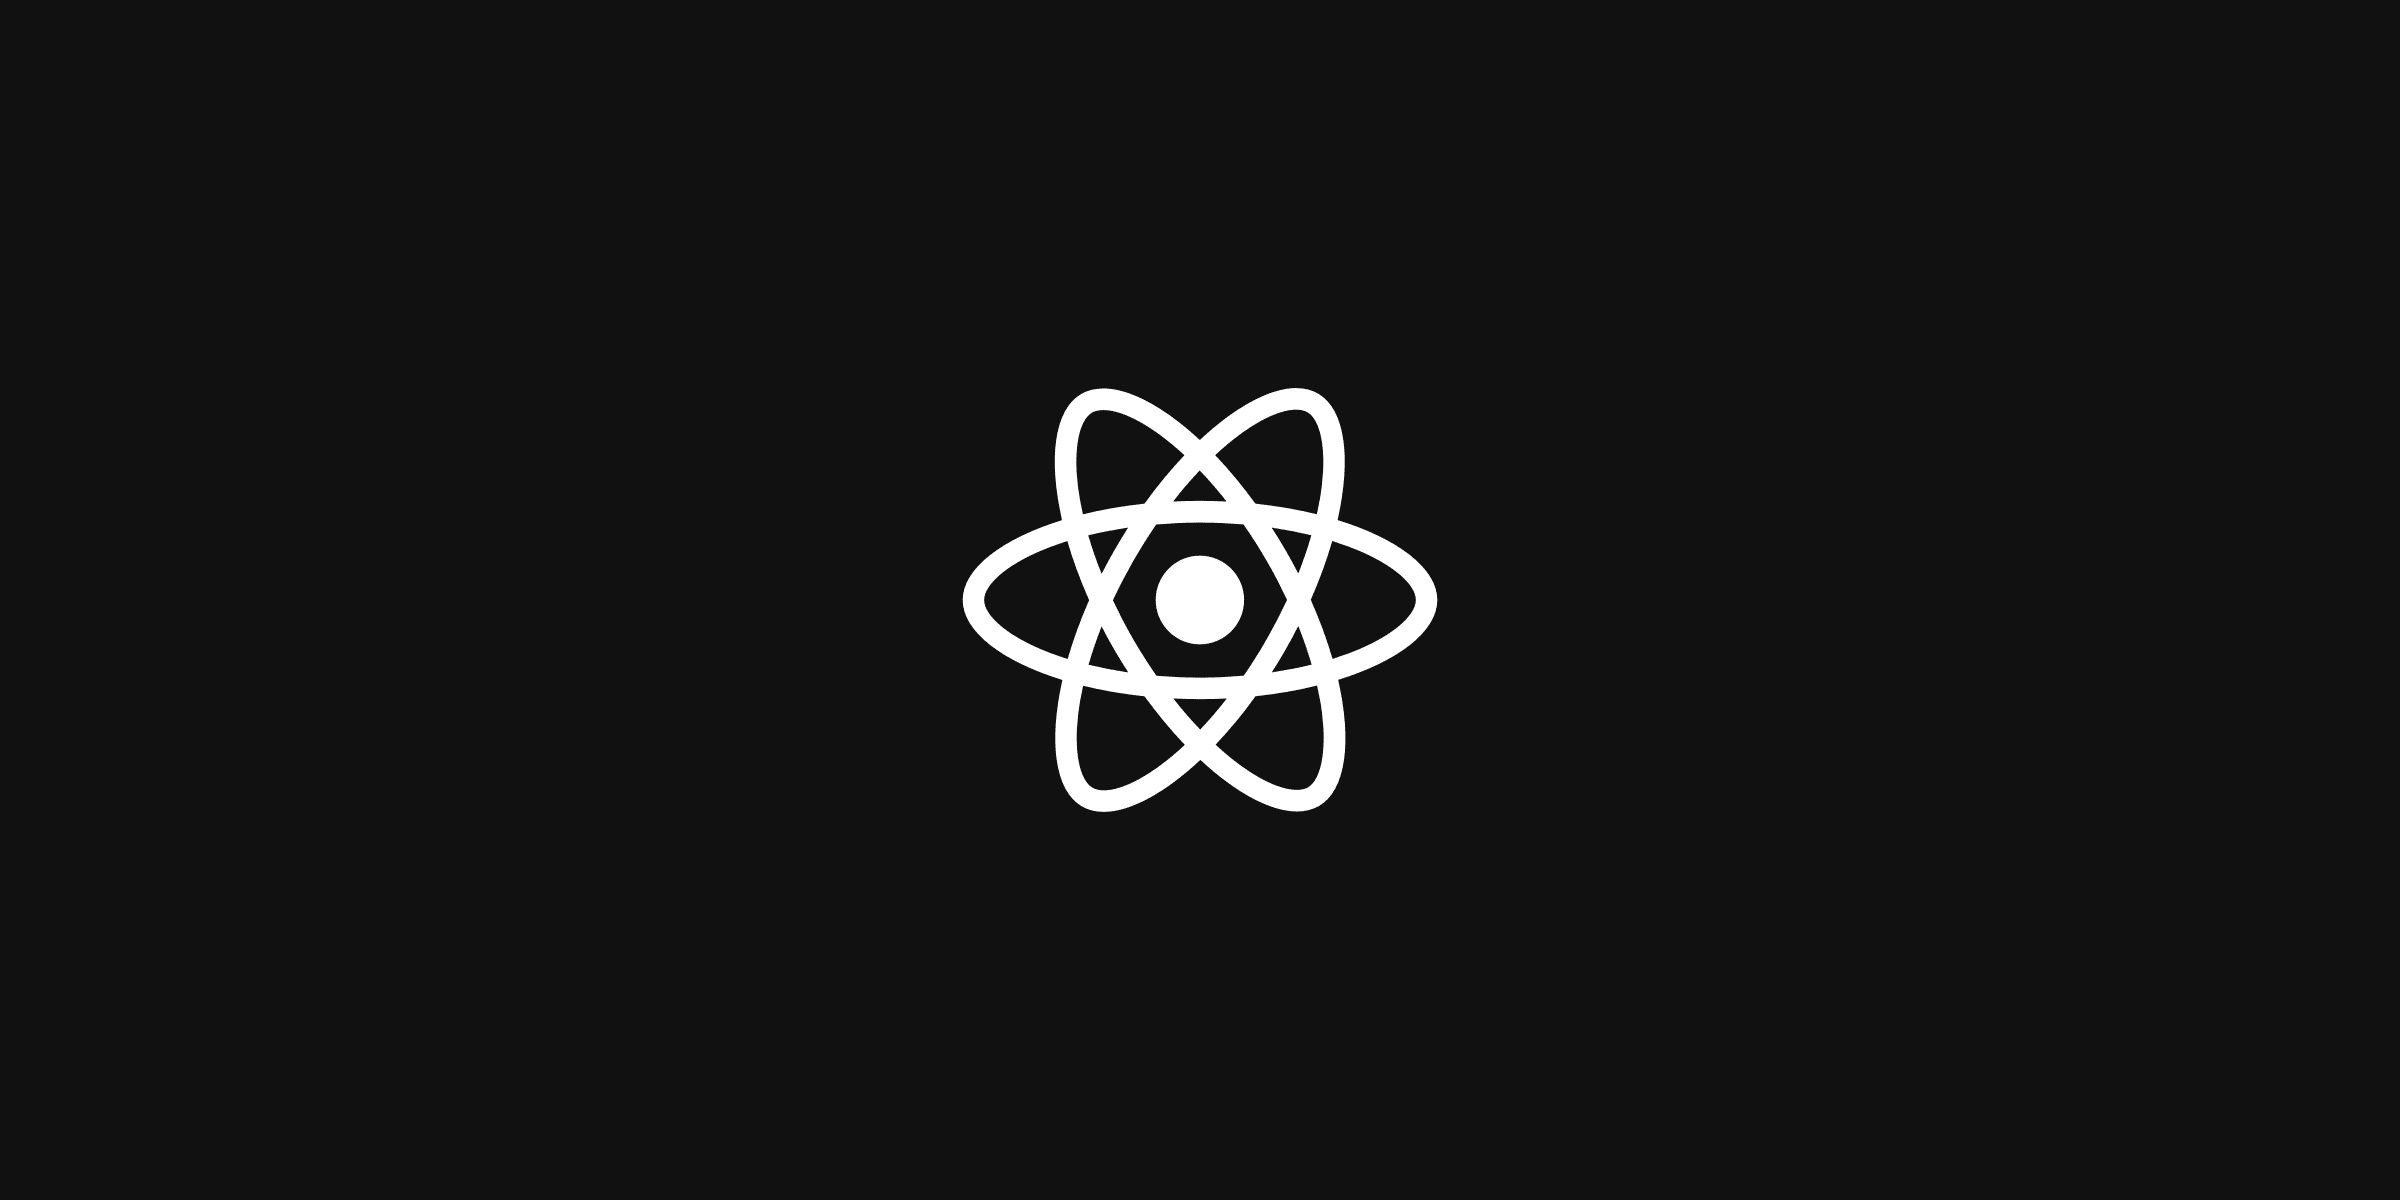 How to deploy React App in GitHub Pages